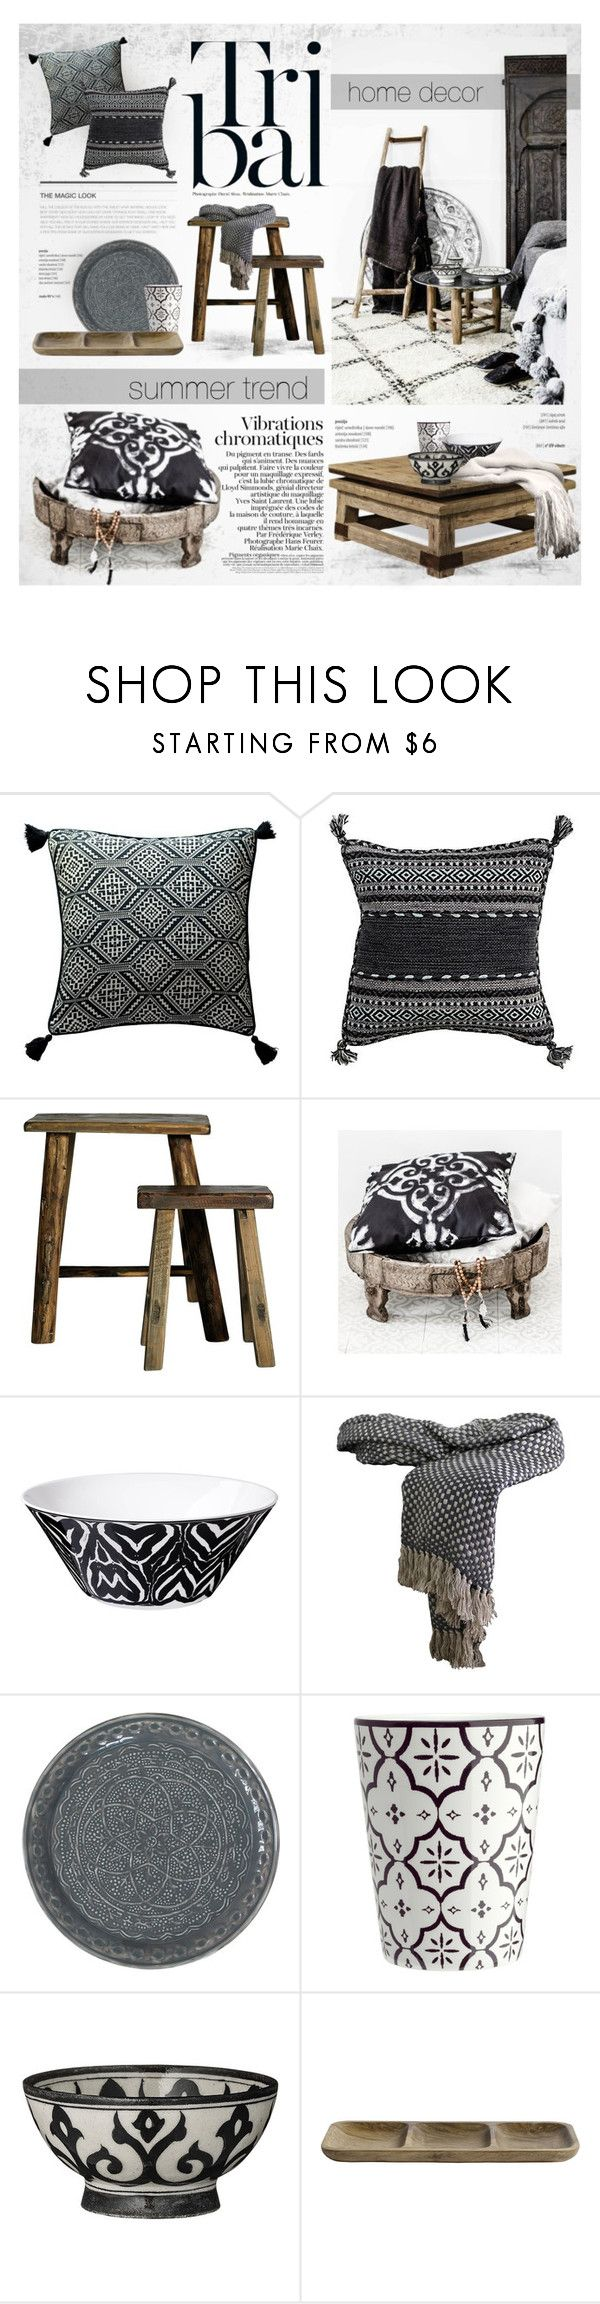 Tribal: Black & White by nyrvelli on Polyvore featuring interior, interiors, interior design, hogar, home decor, interior decorating, Rizzy Home, GreenGate, Nordal and DAY Birger et Mikkelsen